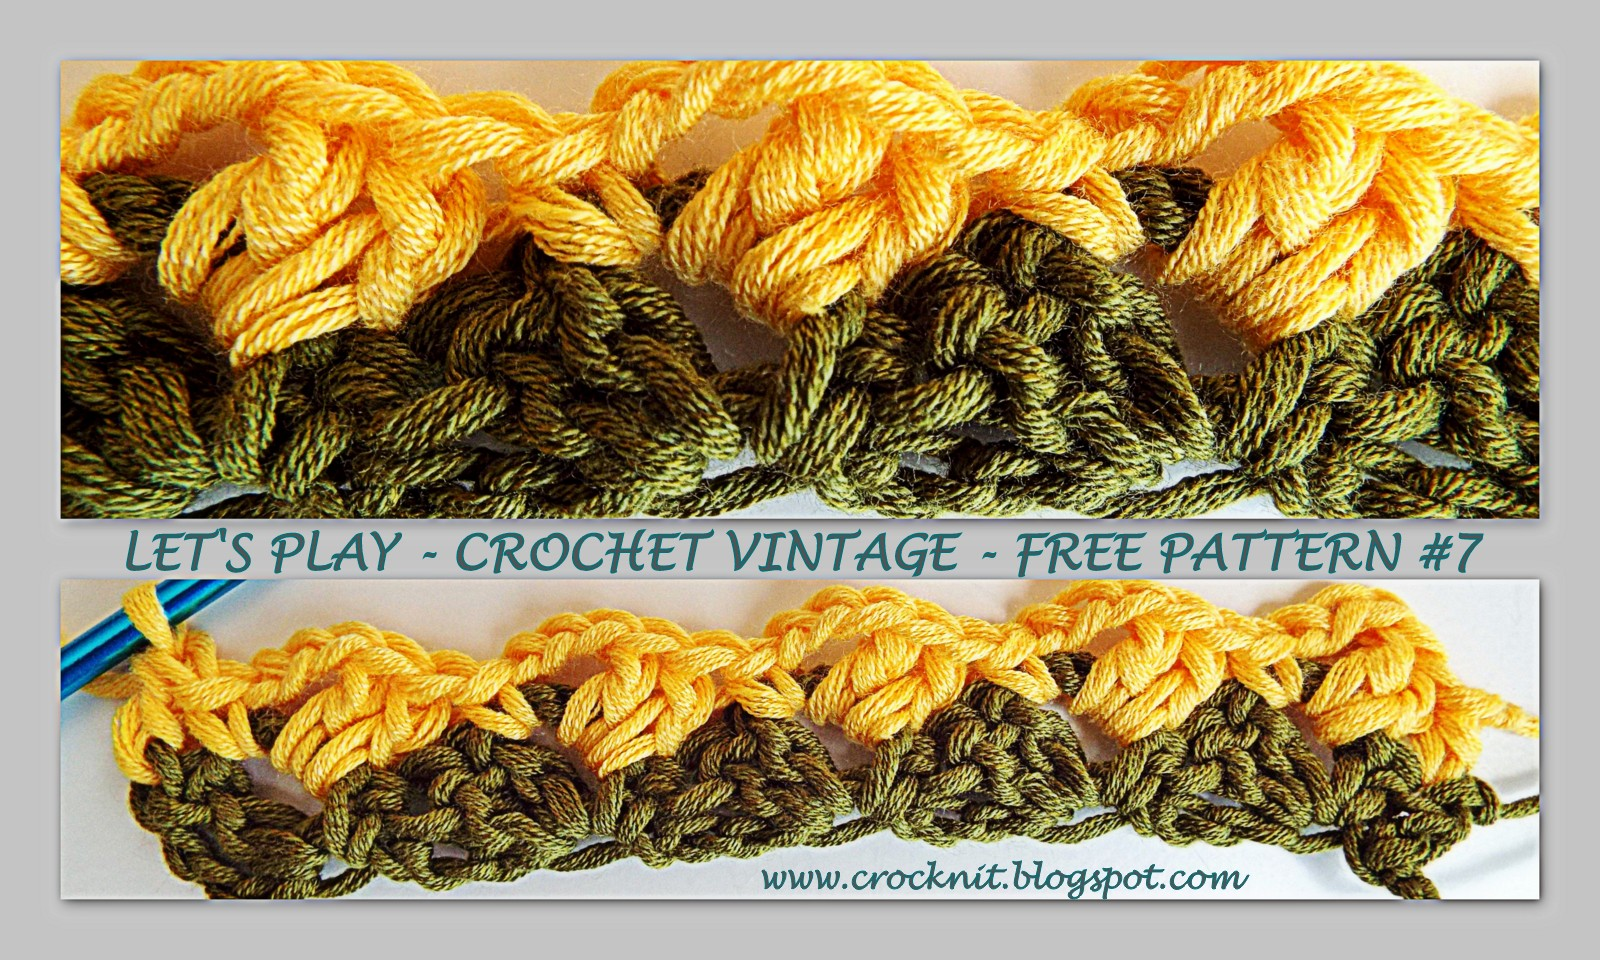 MICROCKNIT CREATIONS: LETS PLAY - CROCHET VINTAGE - FREE PATTERN #7